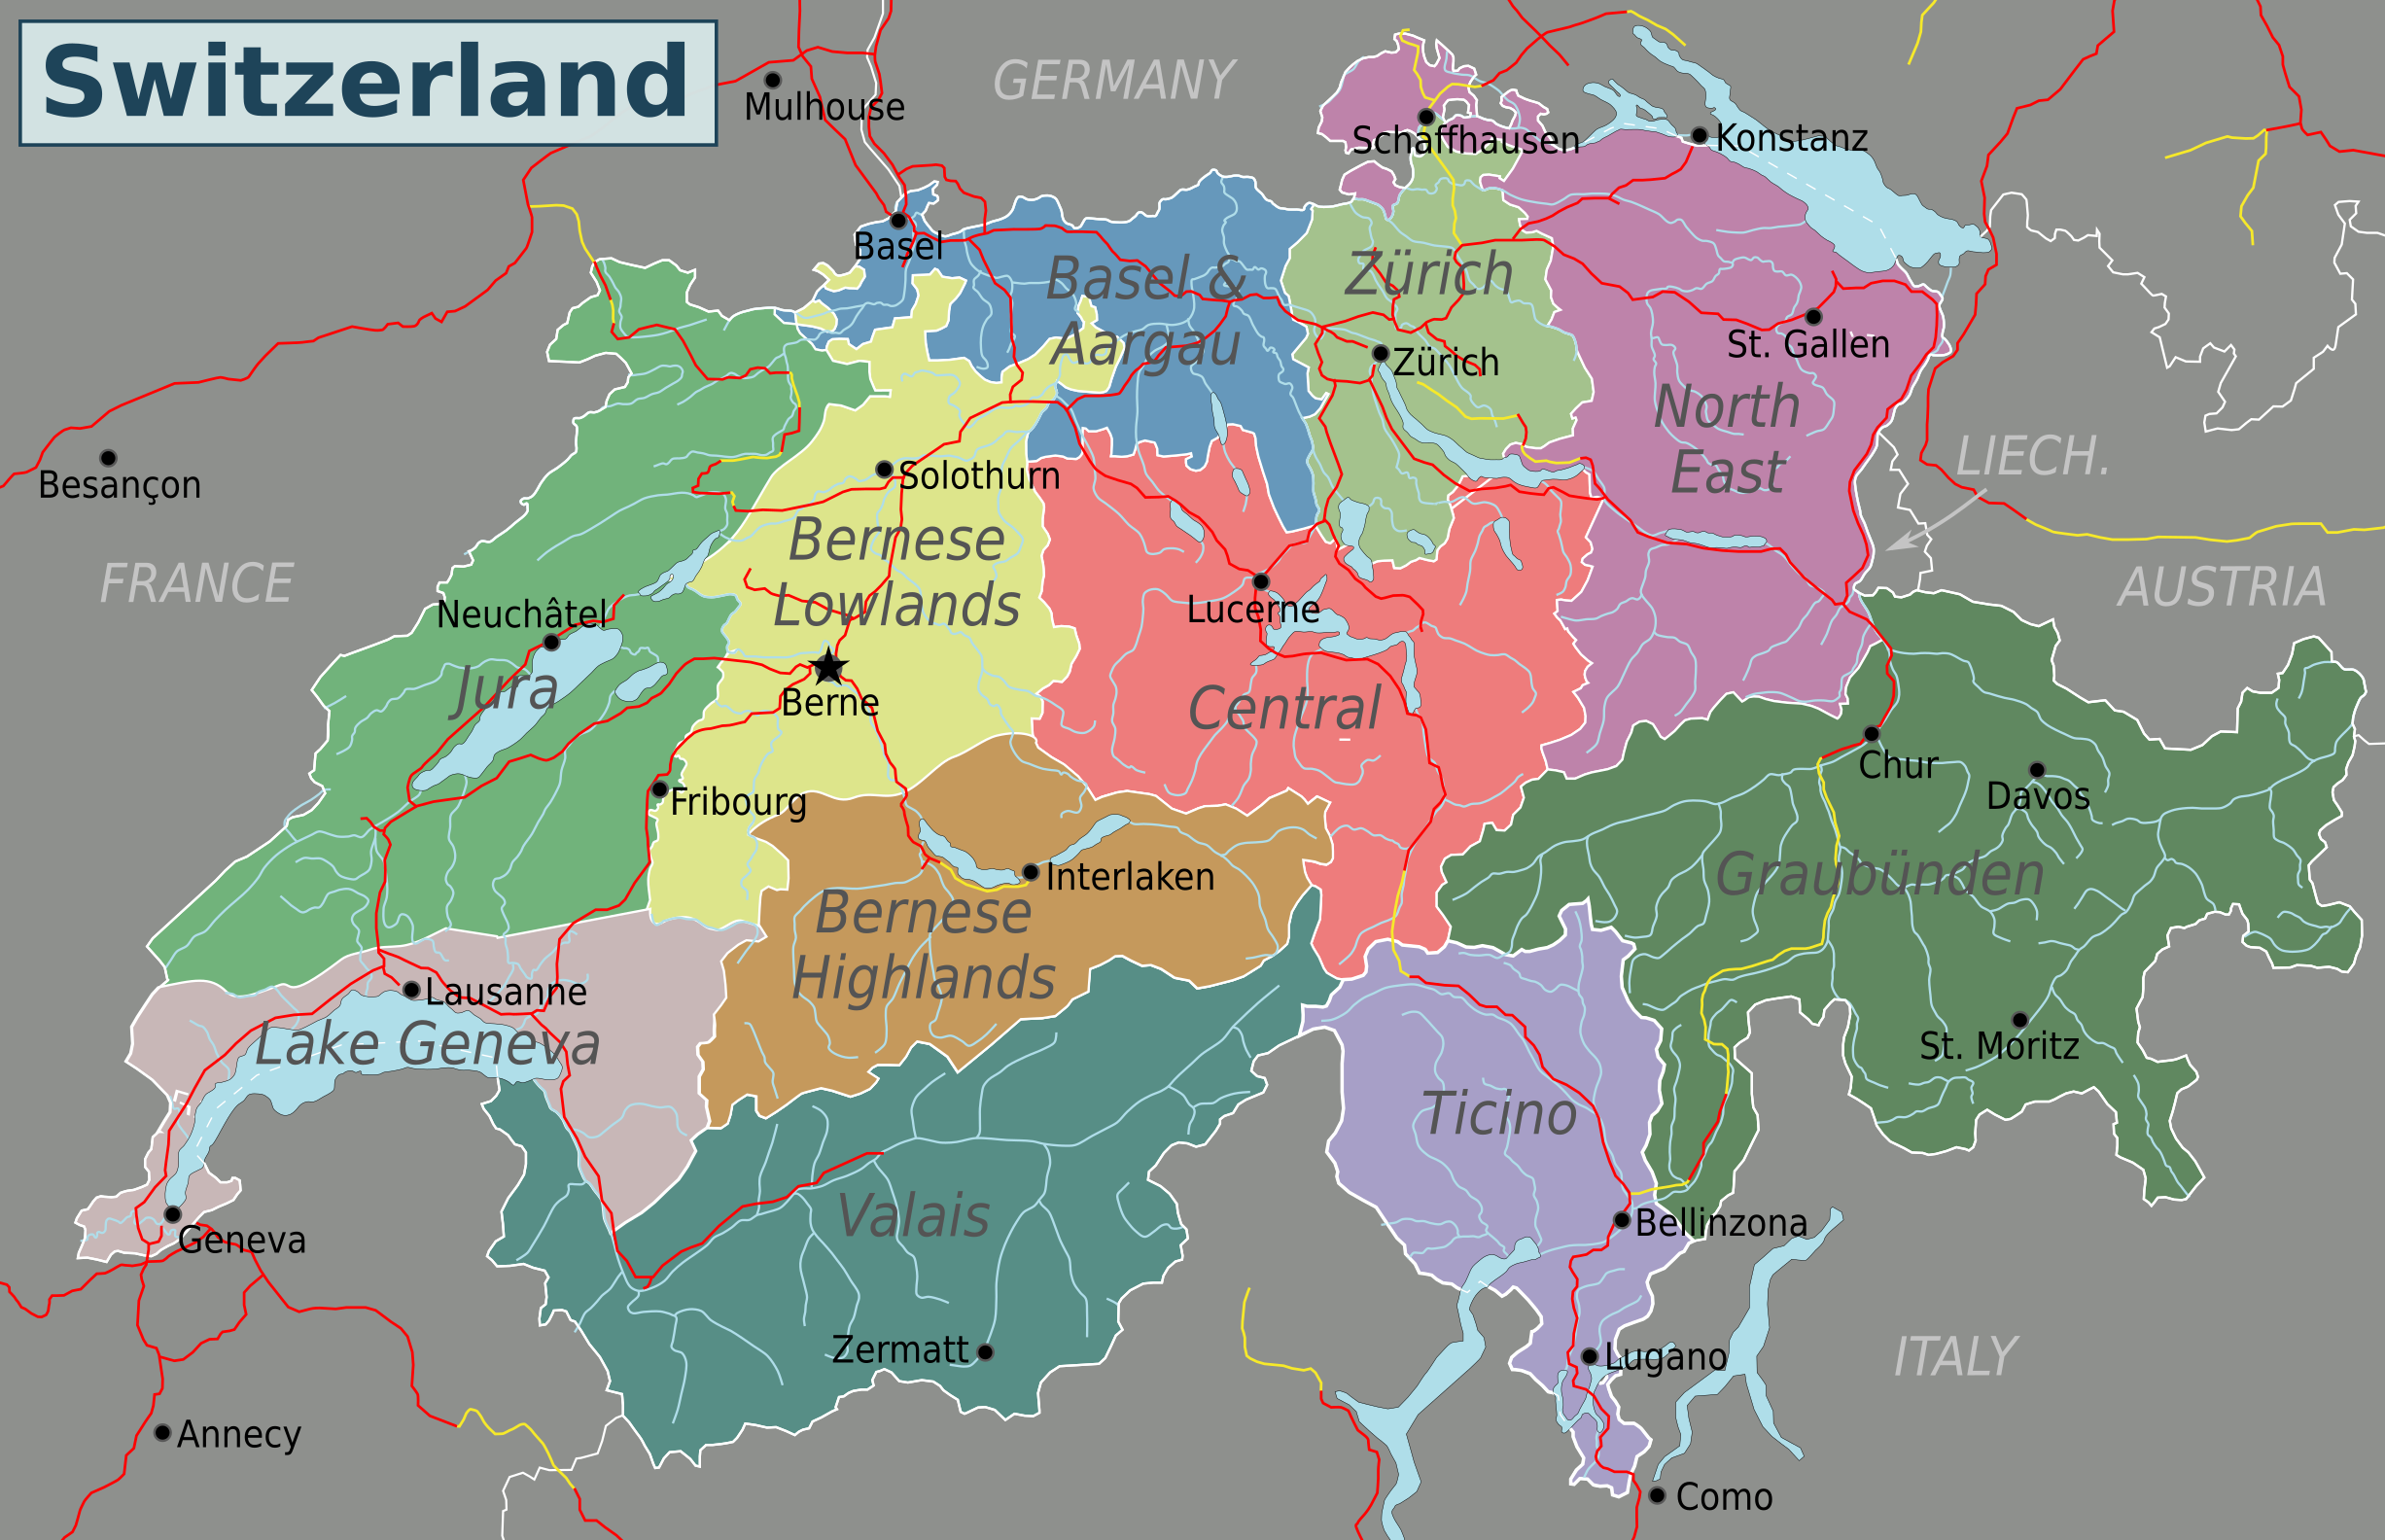 FileSwitzerlandmappng Wikimedia Commons